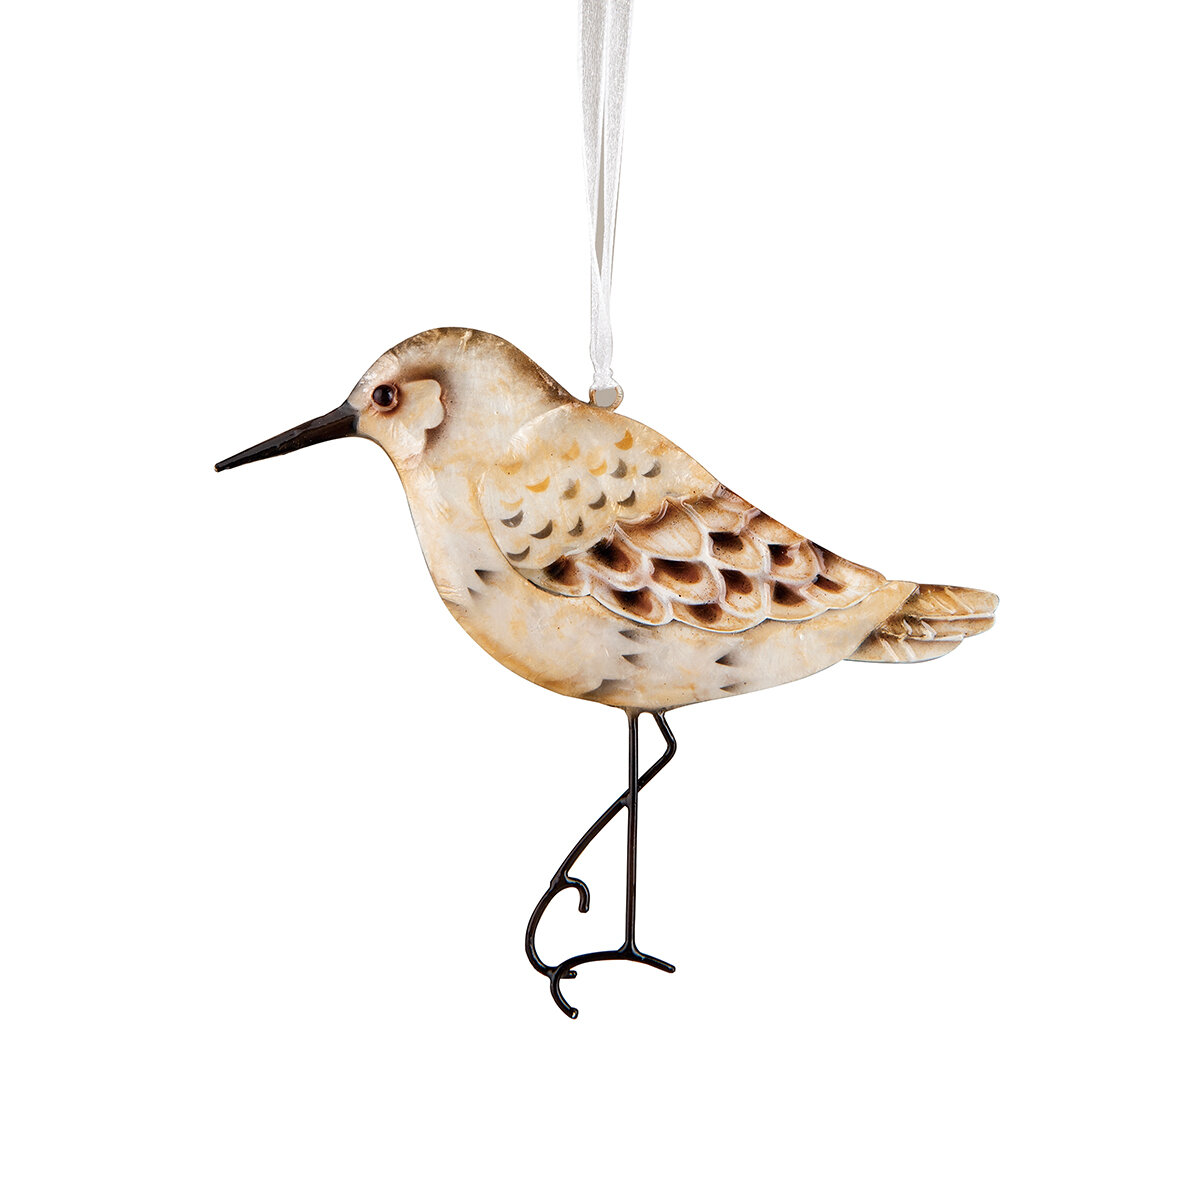 The Holiday Aisle Sandpiper Pearlized Hanging Figurine Ornament Birch Lane